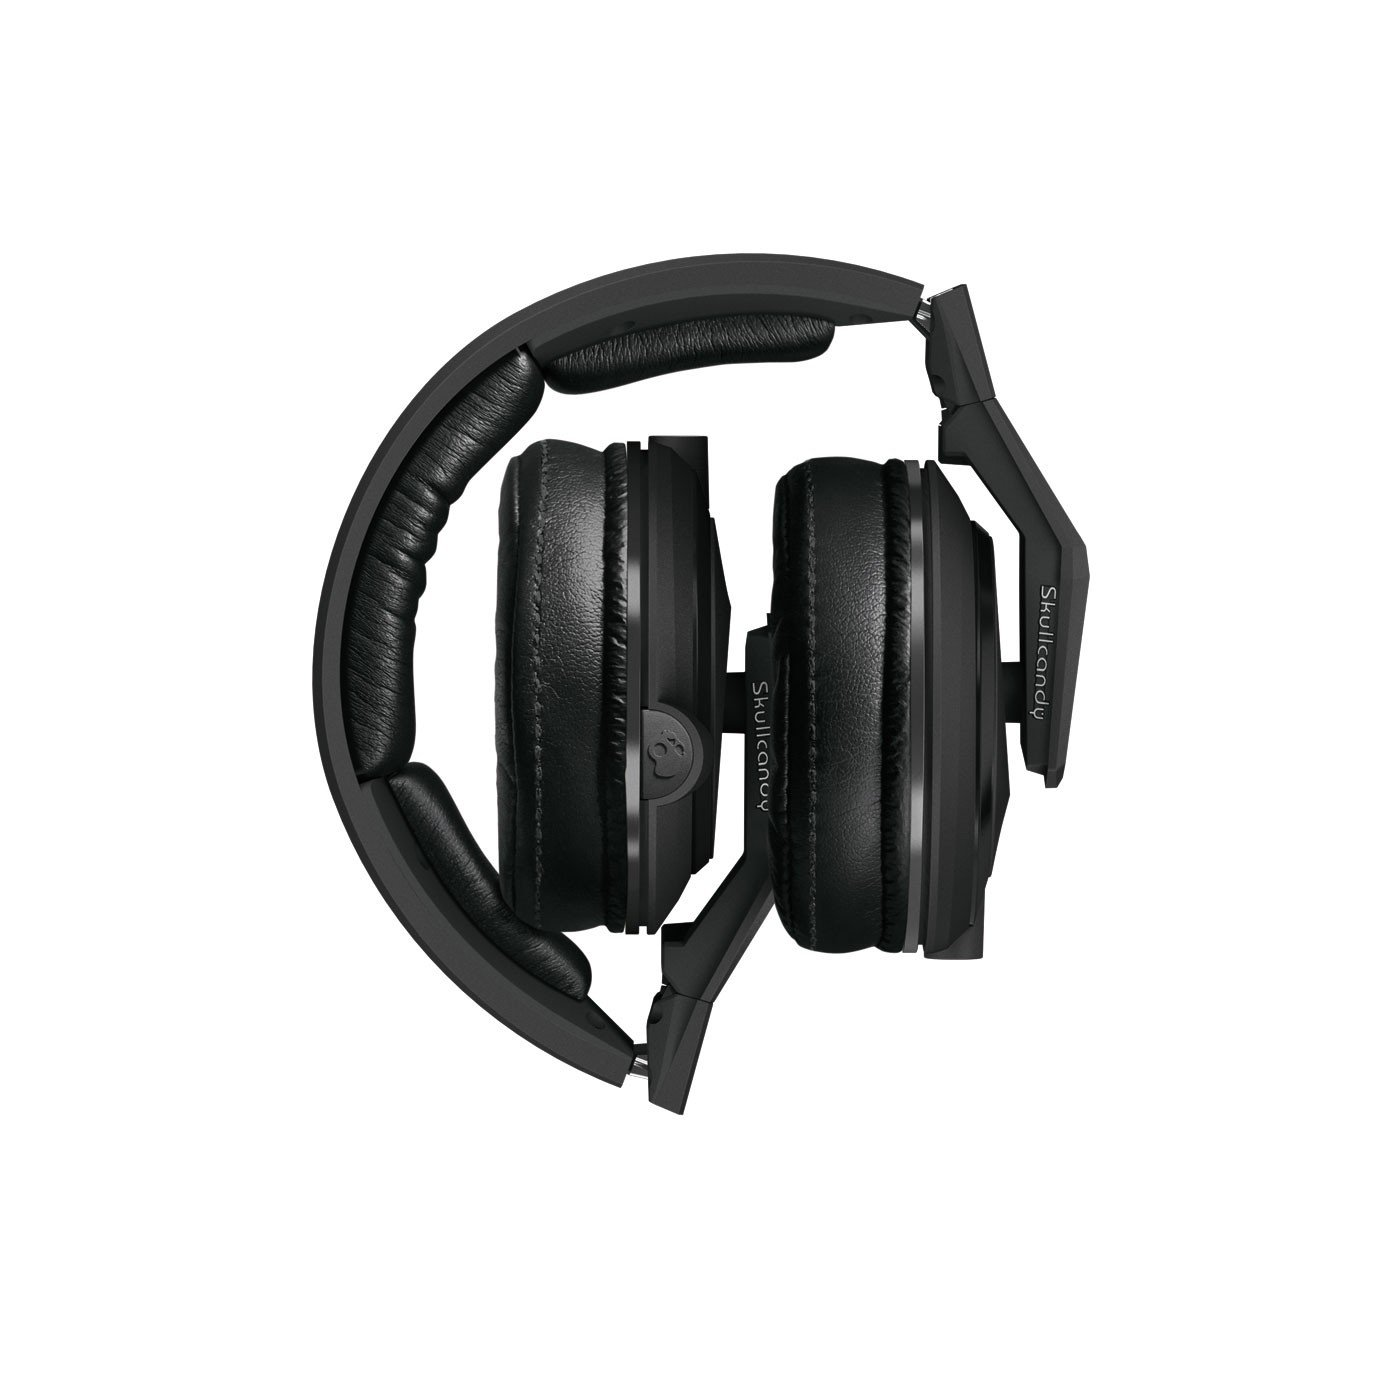 Skullcandy Mix Master Headphones with DJ Capabilities and 3 Button Mic, Matte Black by Skullcandy (Image #3)